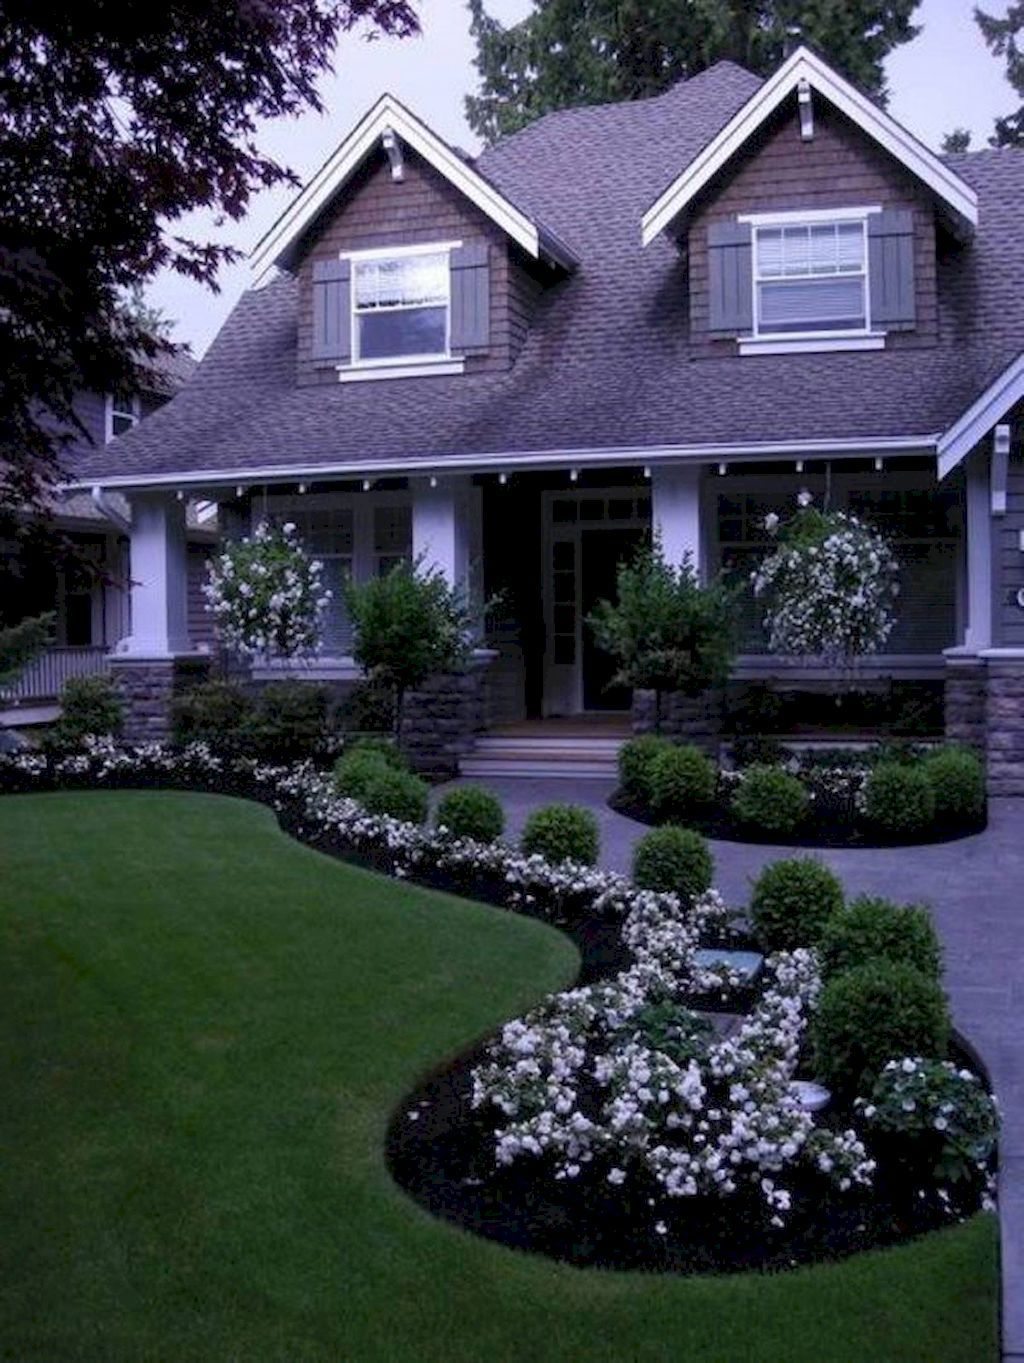 40 beautiful front yard landscaping ideas yard for Landscape my front yard